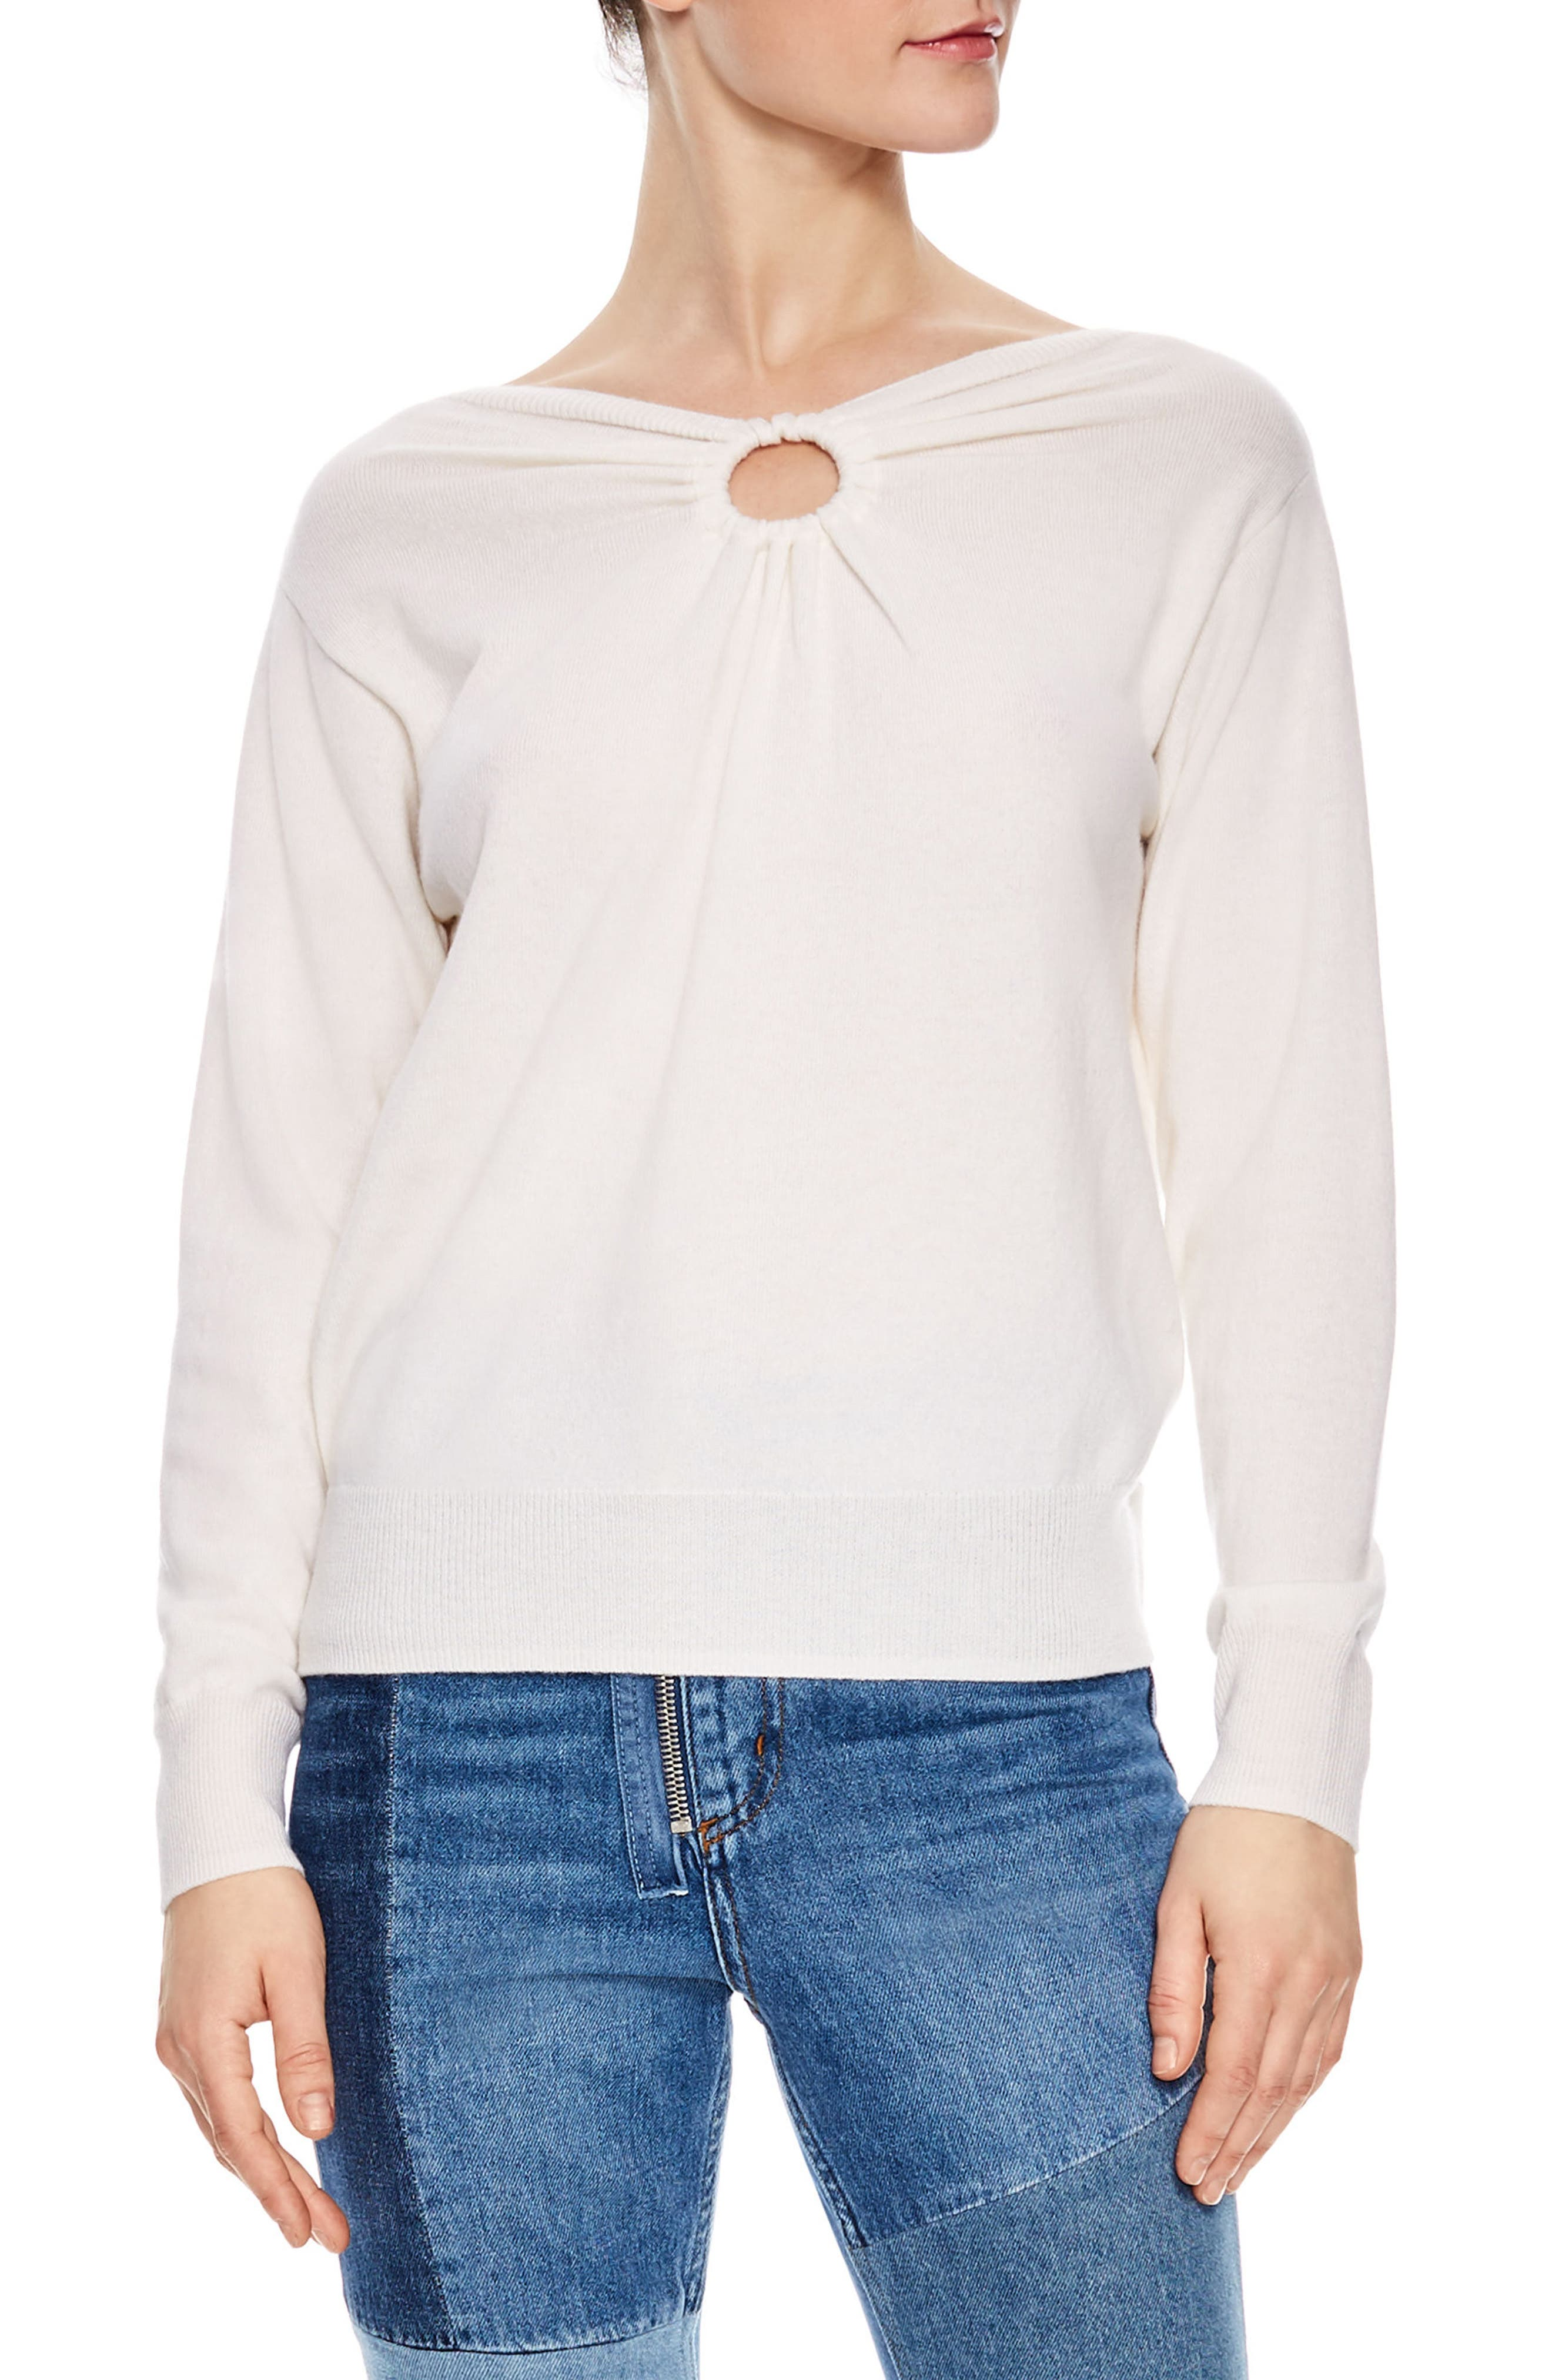 Keyhole Wool & Cashmere Sweater,                             Main thumbnail 1, color,                             100